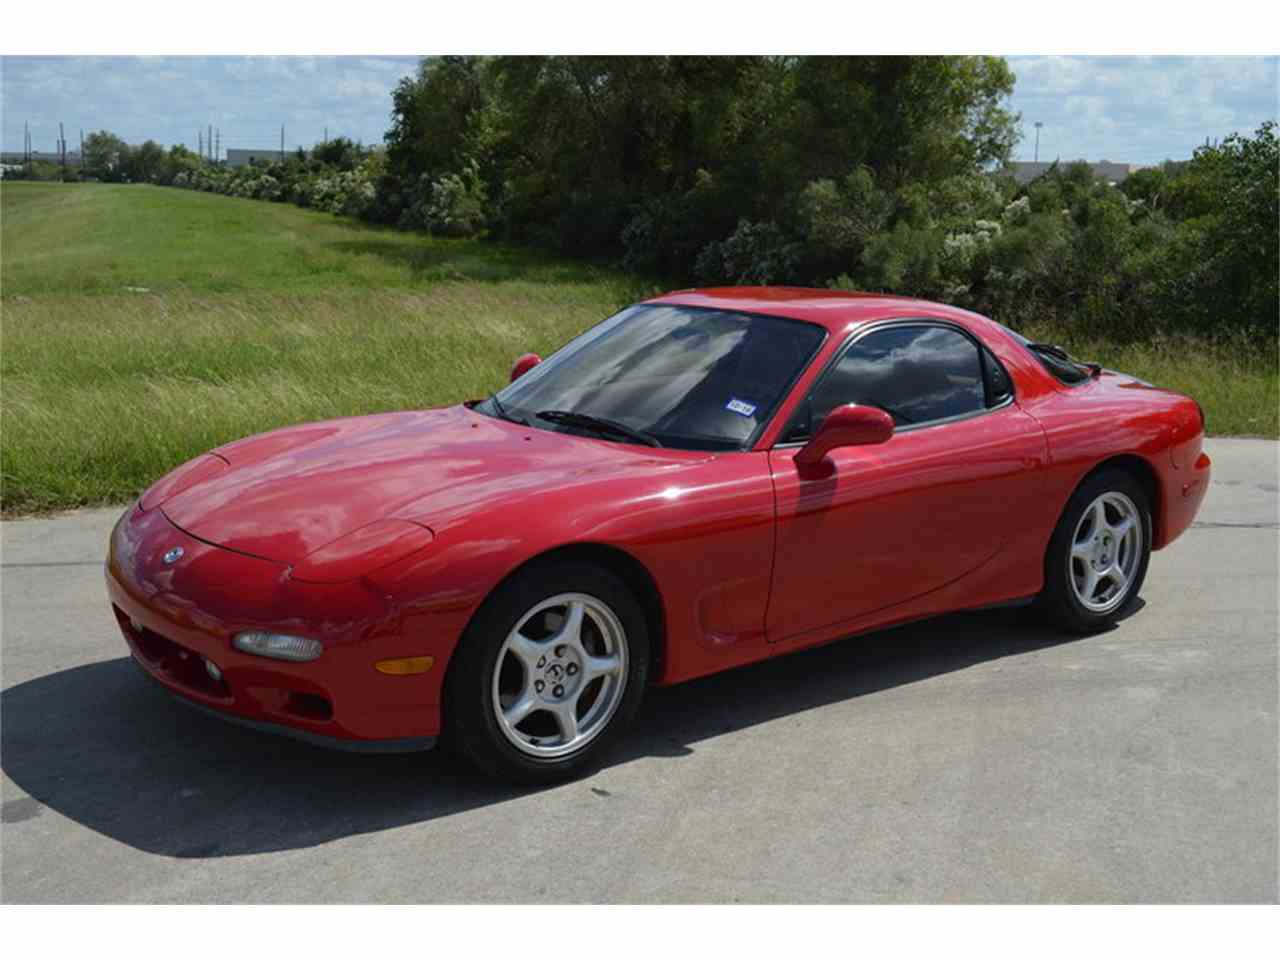 pictures upgrades picture rx mods touring mazda sale for wallpaper